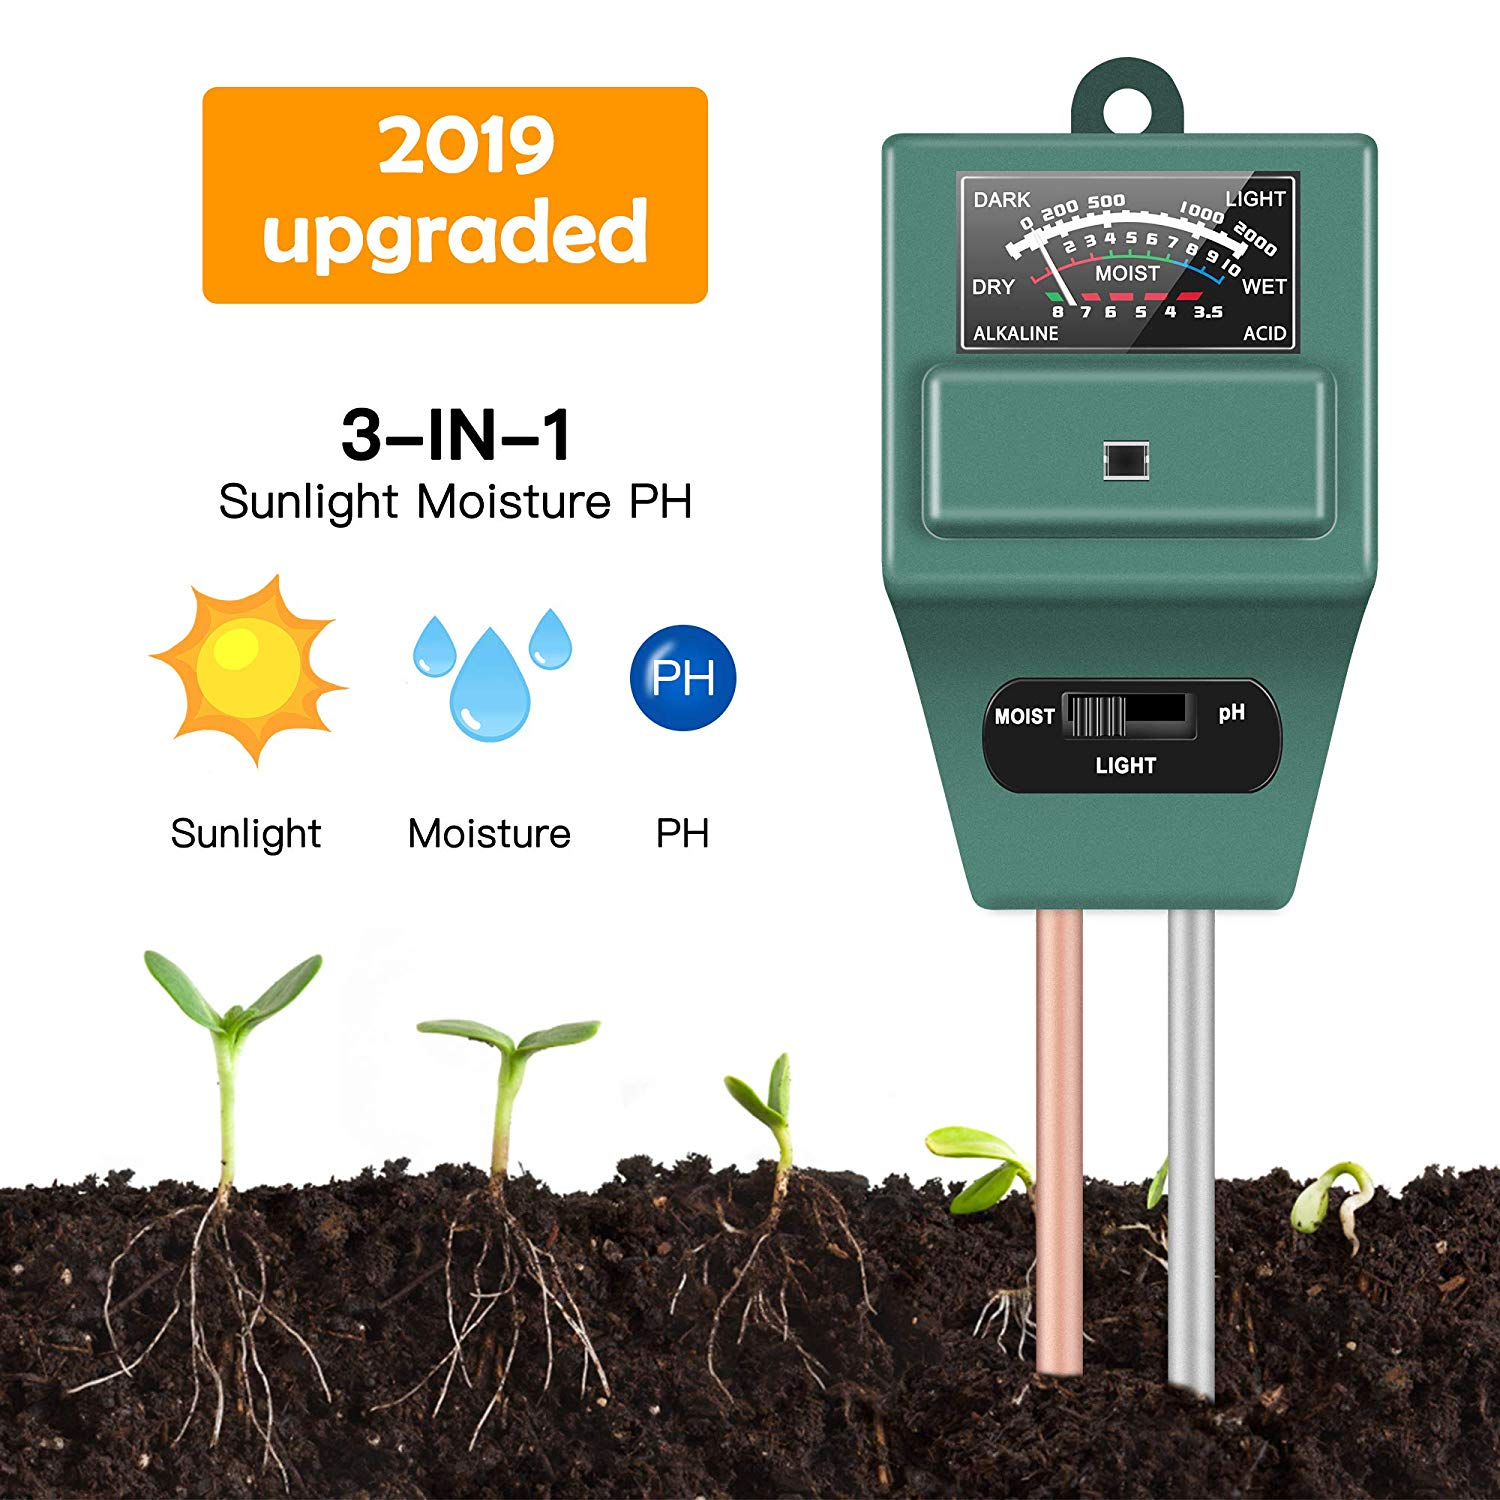 Soil Tester Meter 3-in-1 Test Kit for Moisture Light pH for Home and Garden Lawn Farm Plants Herbs Gardening Tools